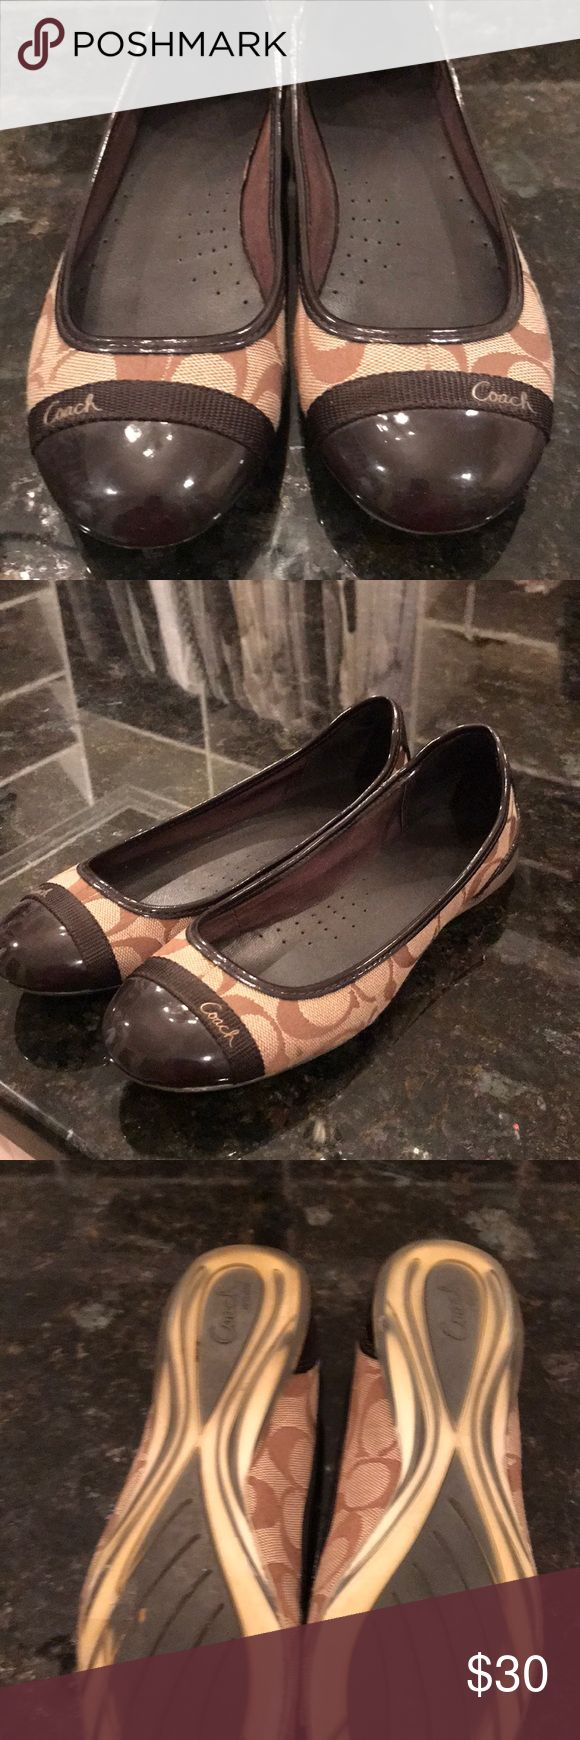 Coach flats Size 6 coach flats Coach Shoes Flats & Loafers